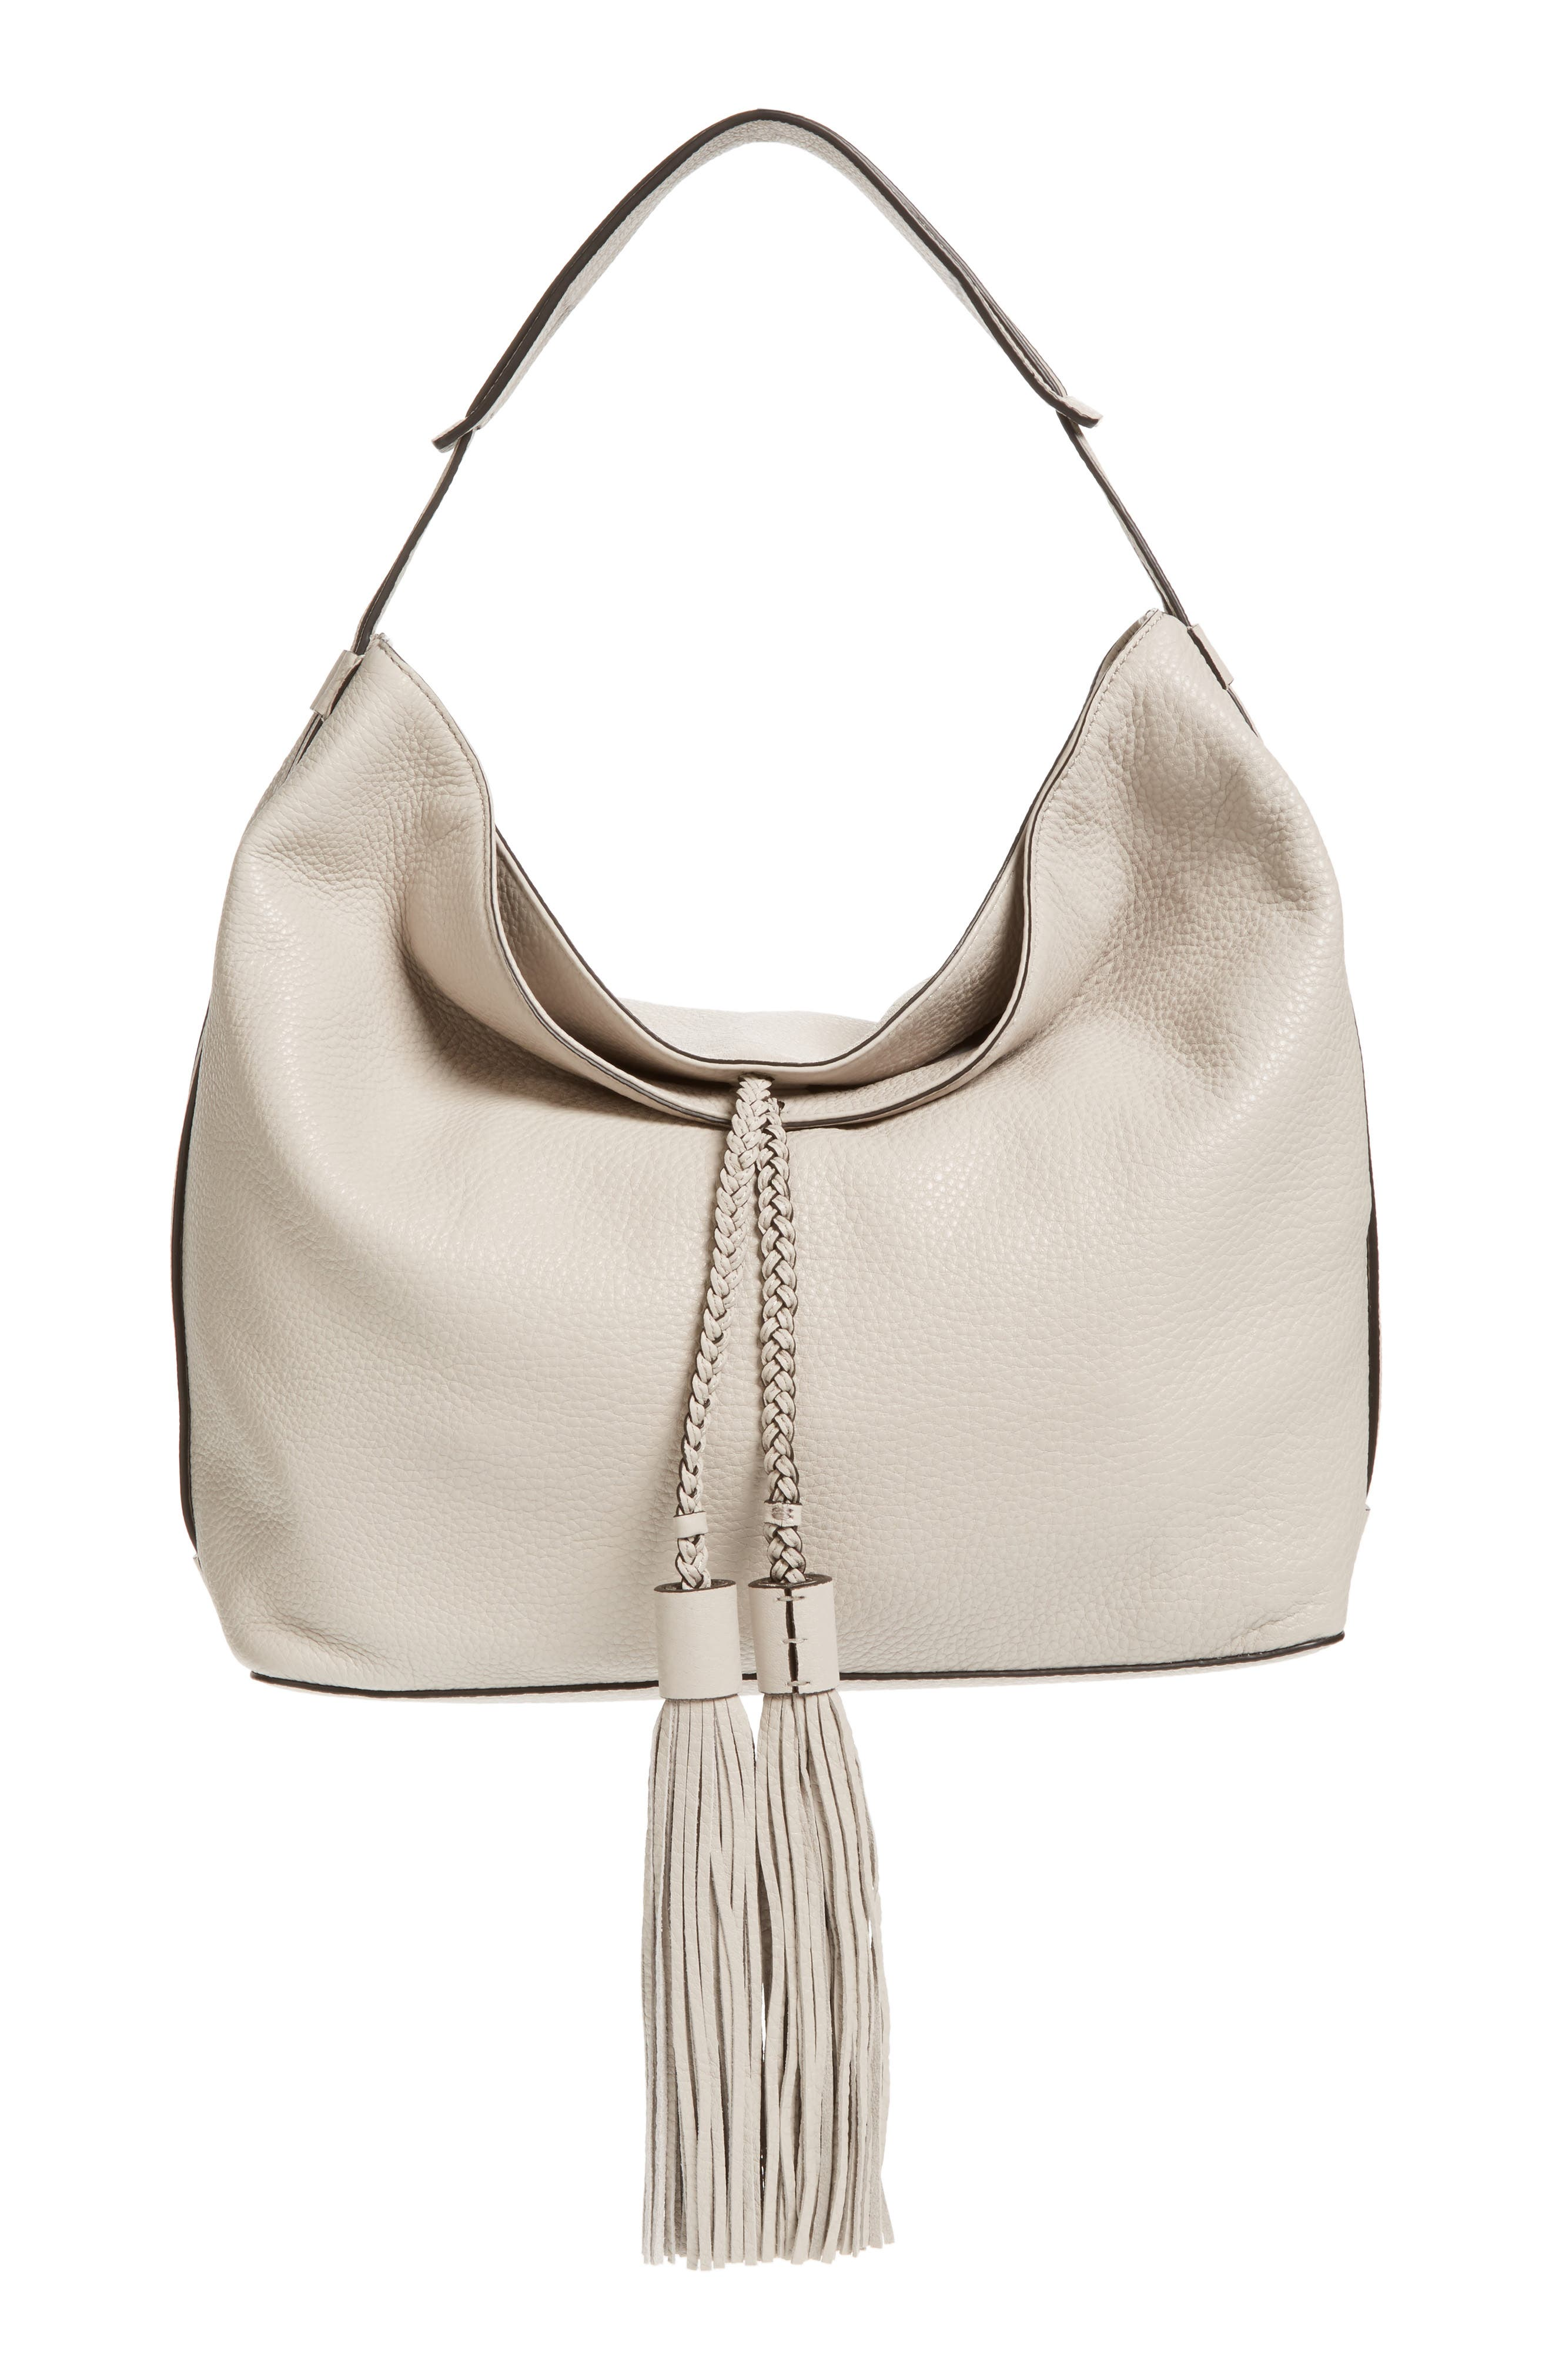 Main Image - Rebecca Minkoff 'Isobel' Tassel Leather Hobo